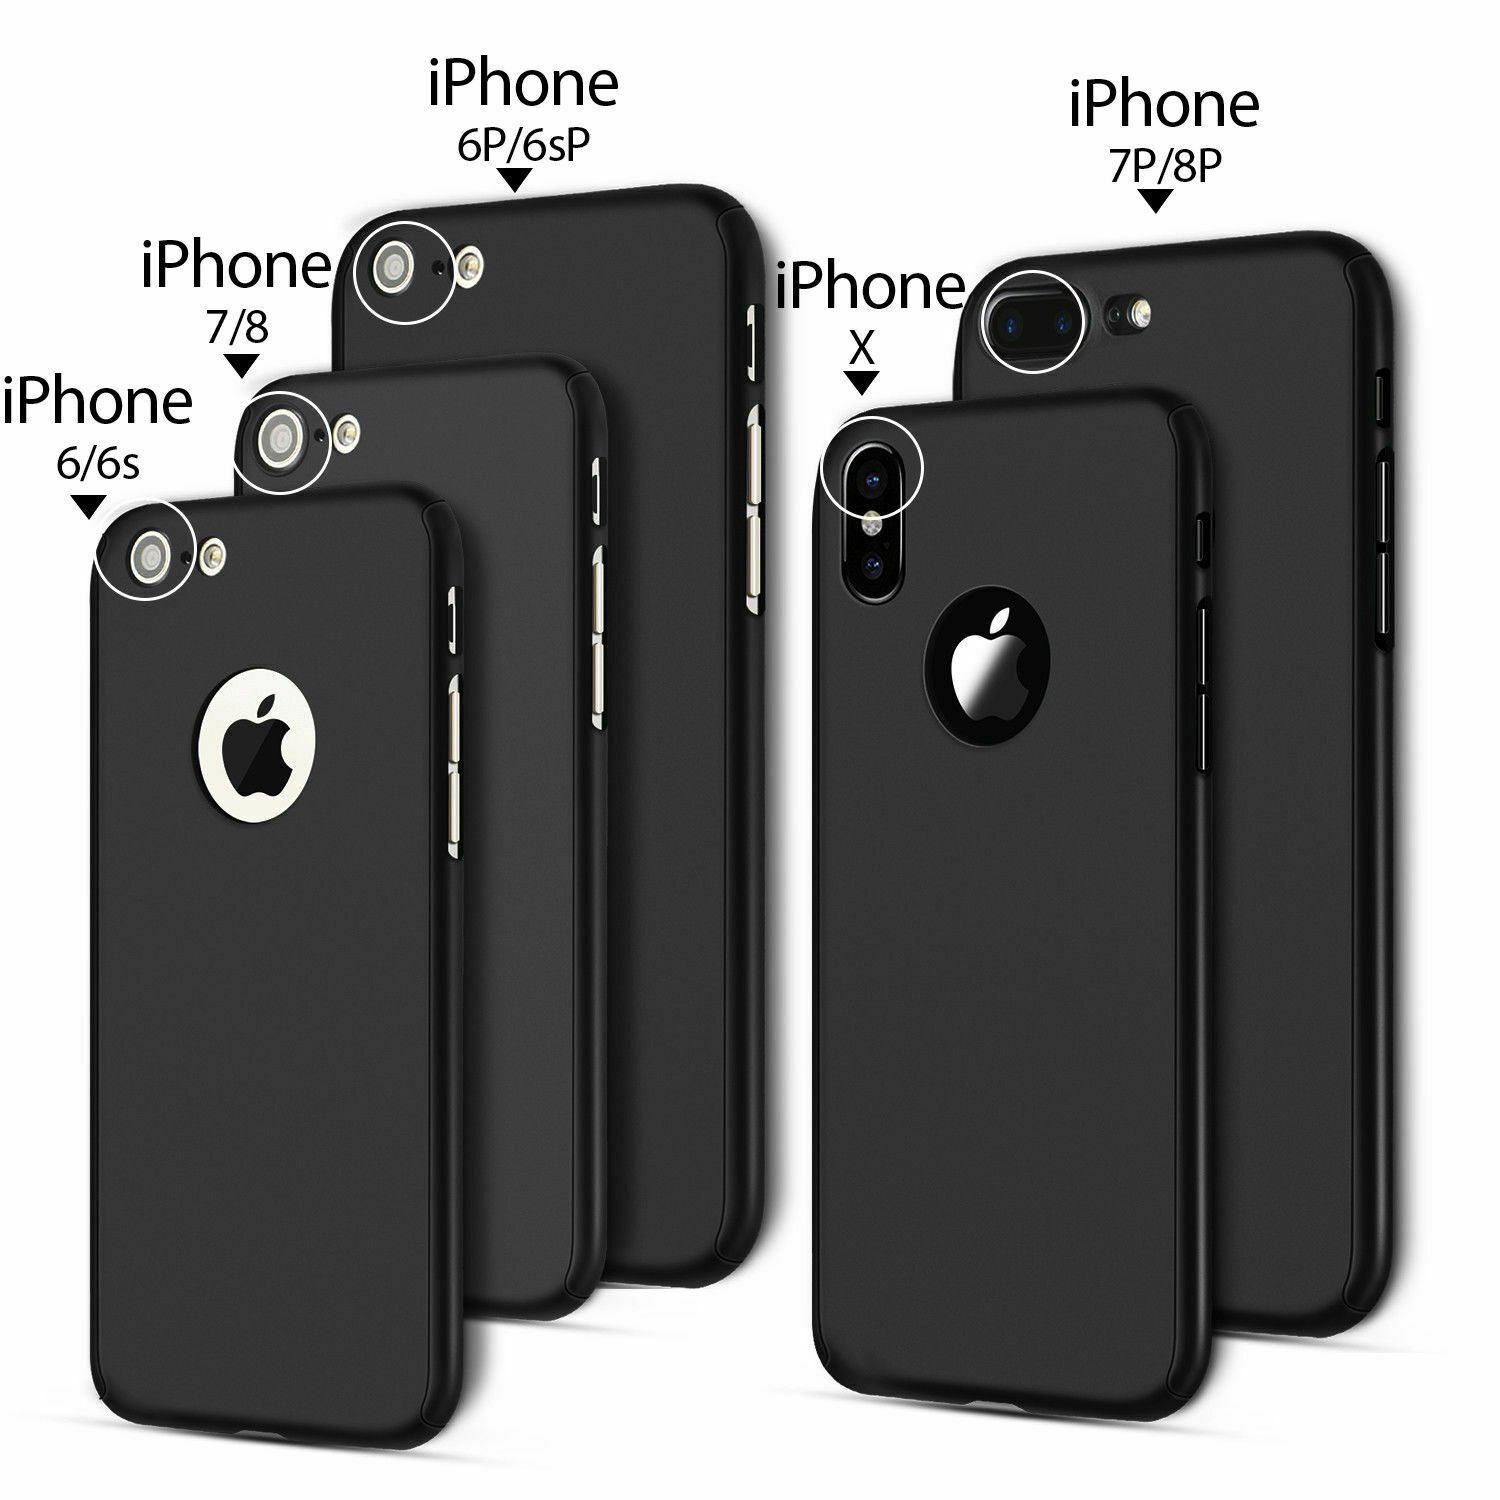 For-iPhone-8-7-6-Plus-X-Xs-Max-XR-Ultra-Thin-Slim-Hard-Case-Cover-Tempered-Glass thumbnail 12